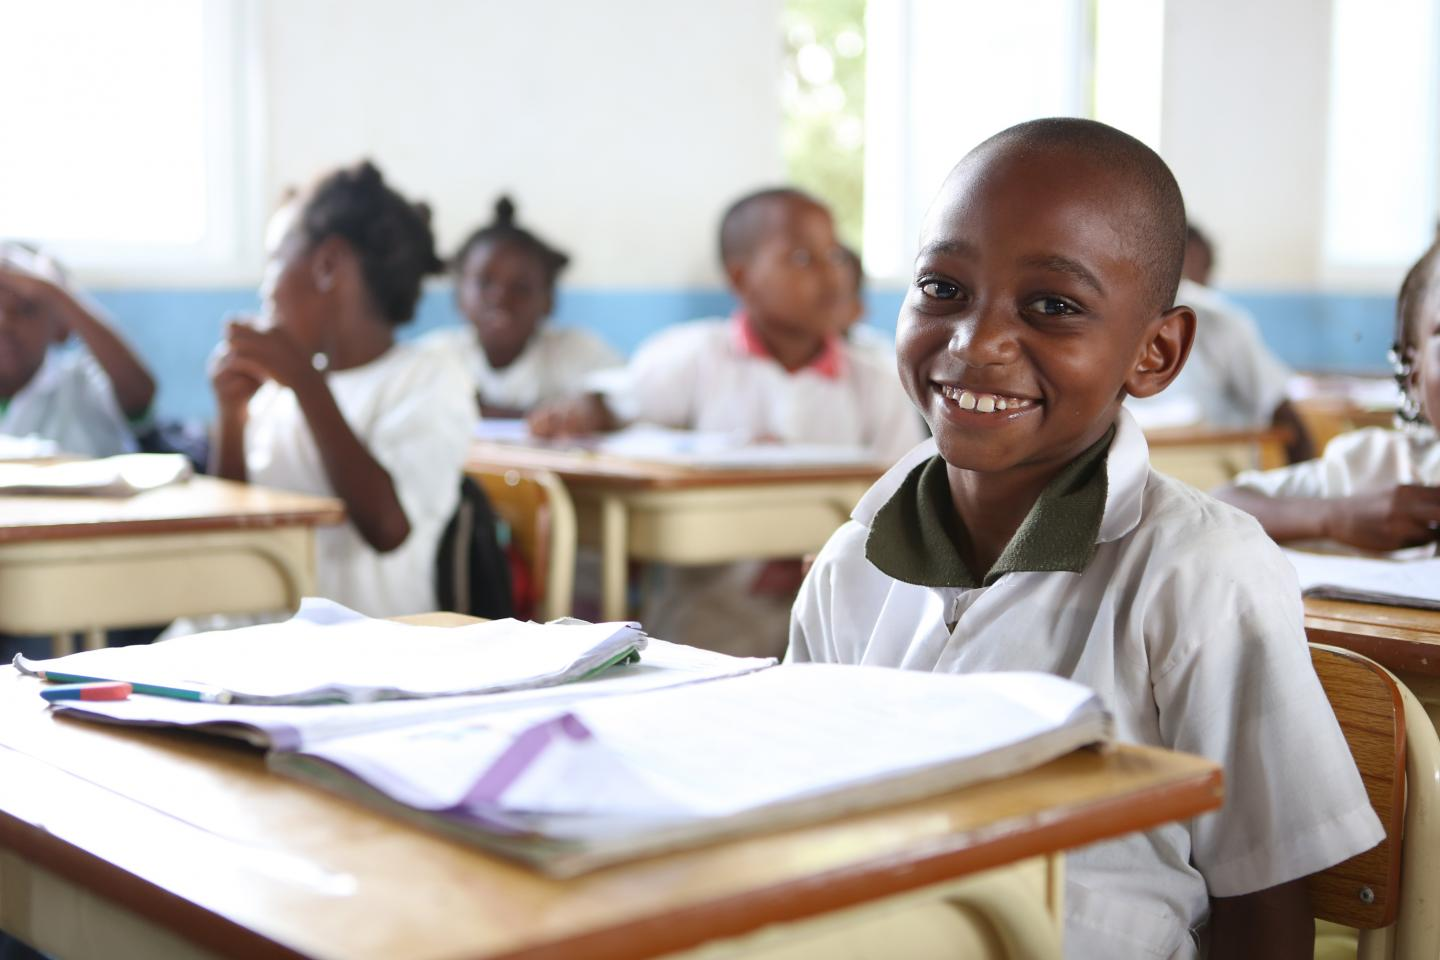 Boy smiles to camera in a classroom in Cacuaco Municipality, Luanda Province